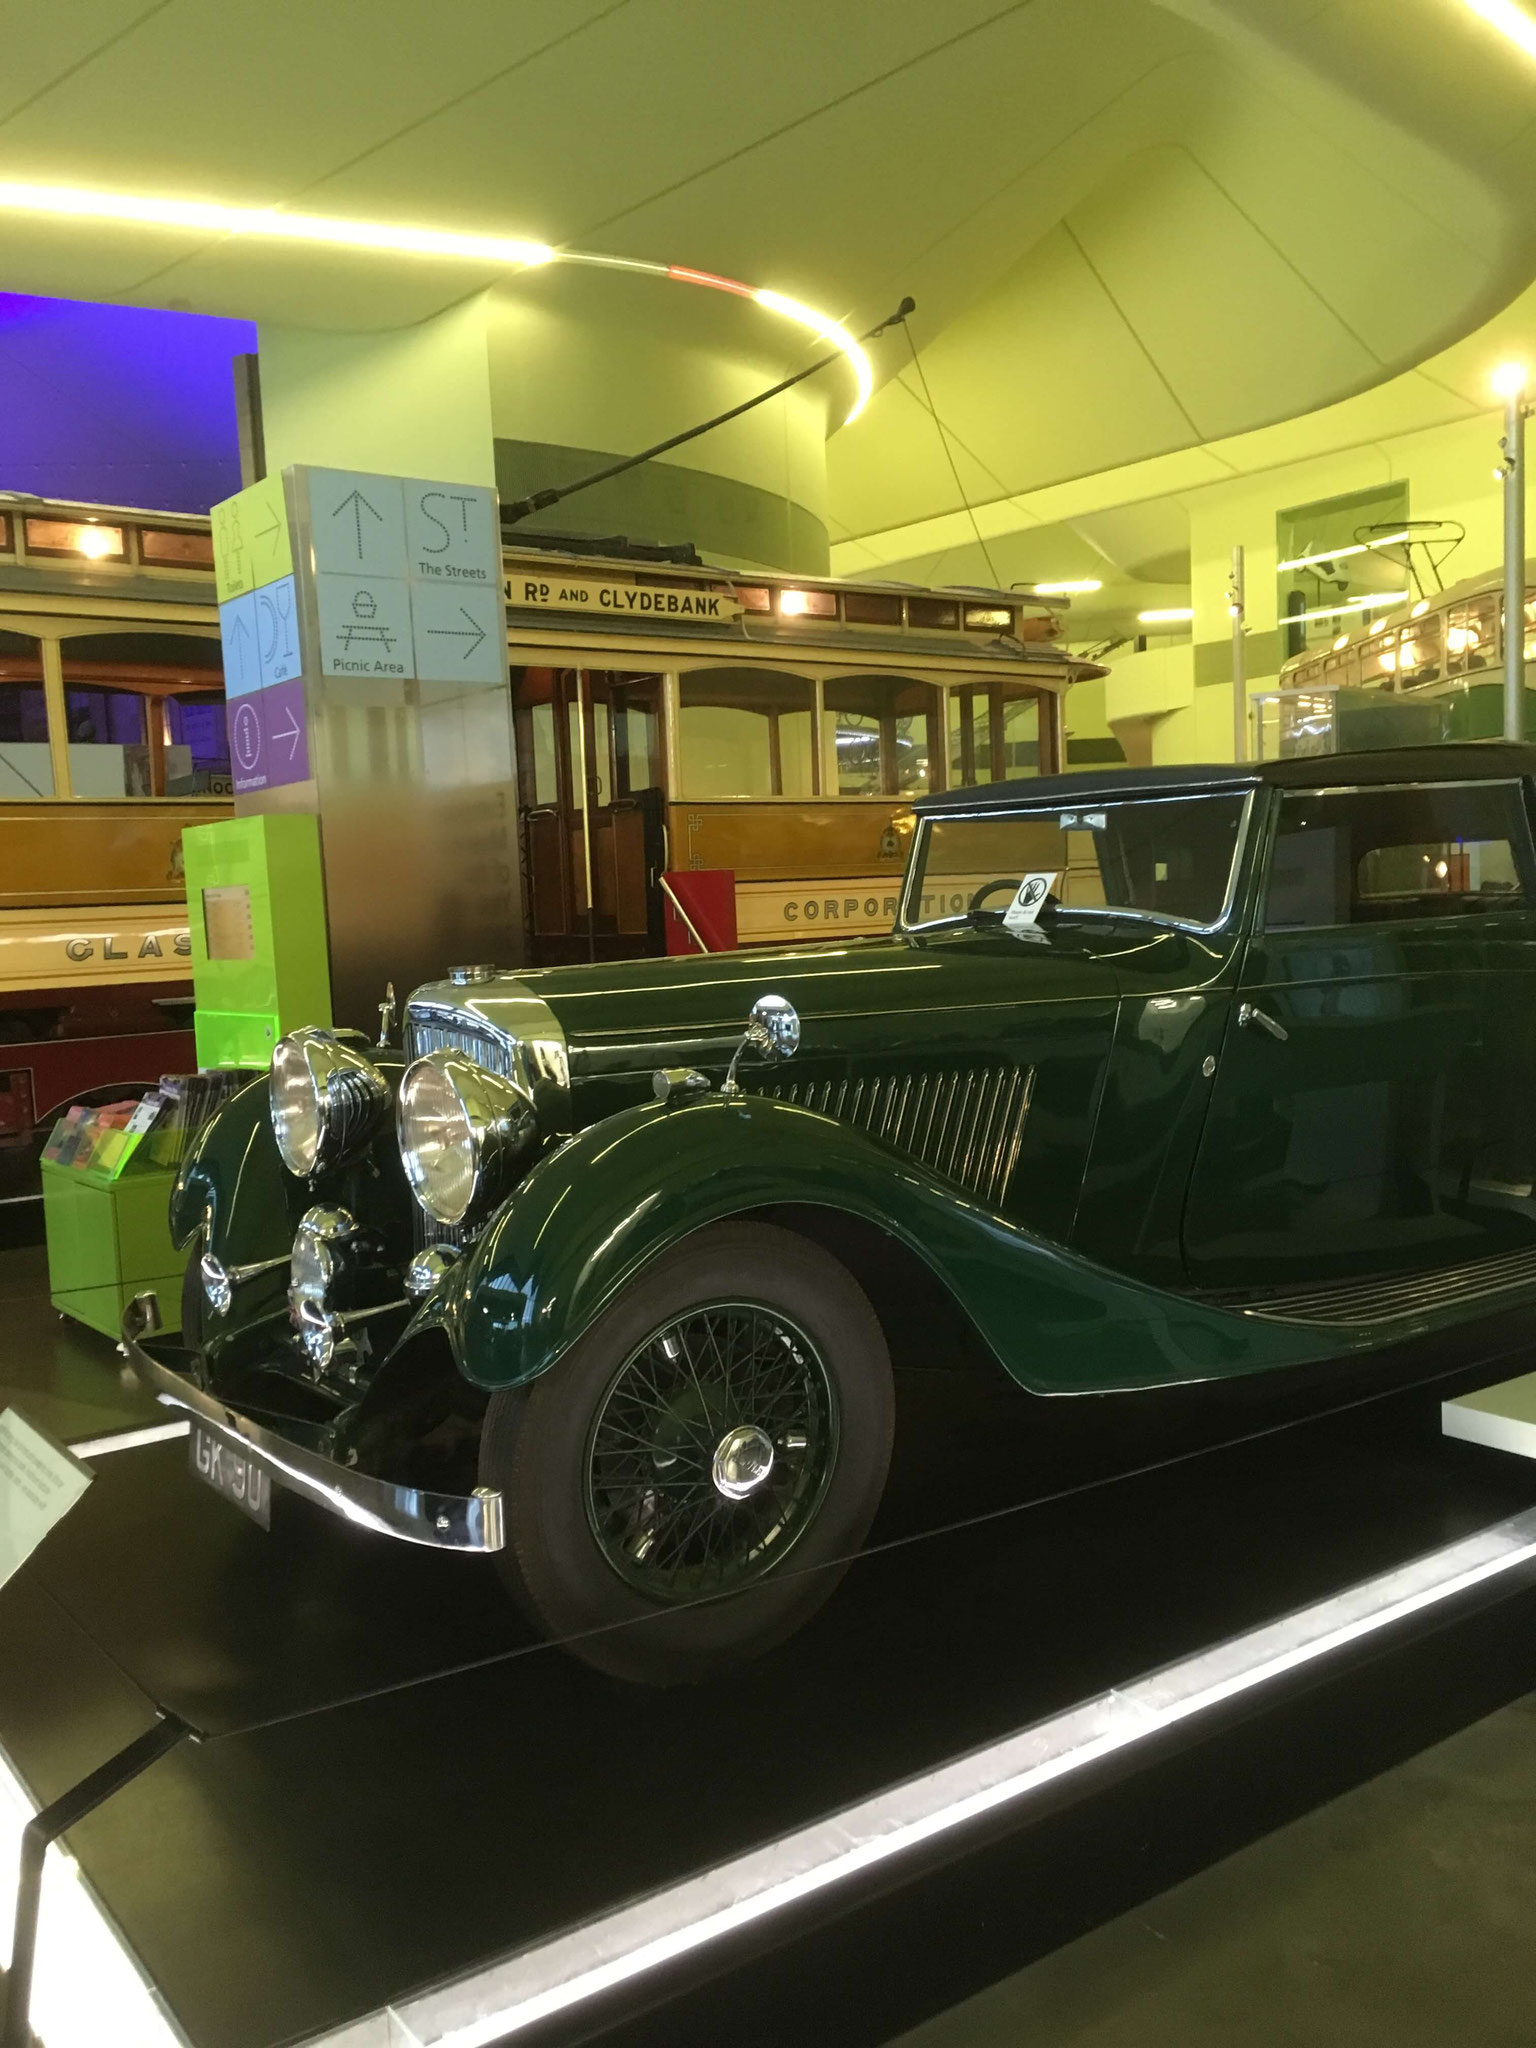 A beautiful old car at Riverside Museum Glasgow